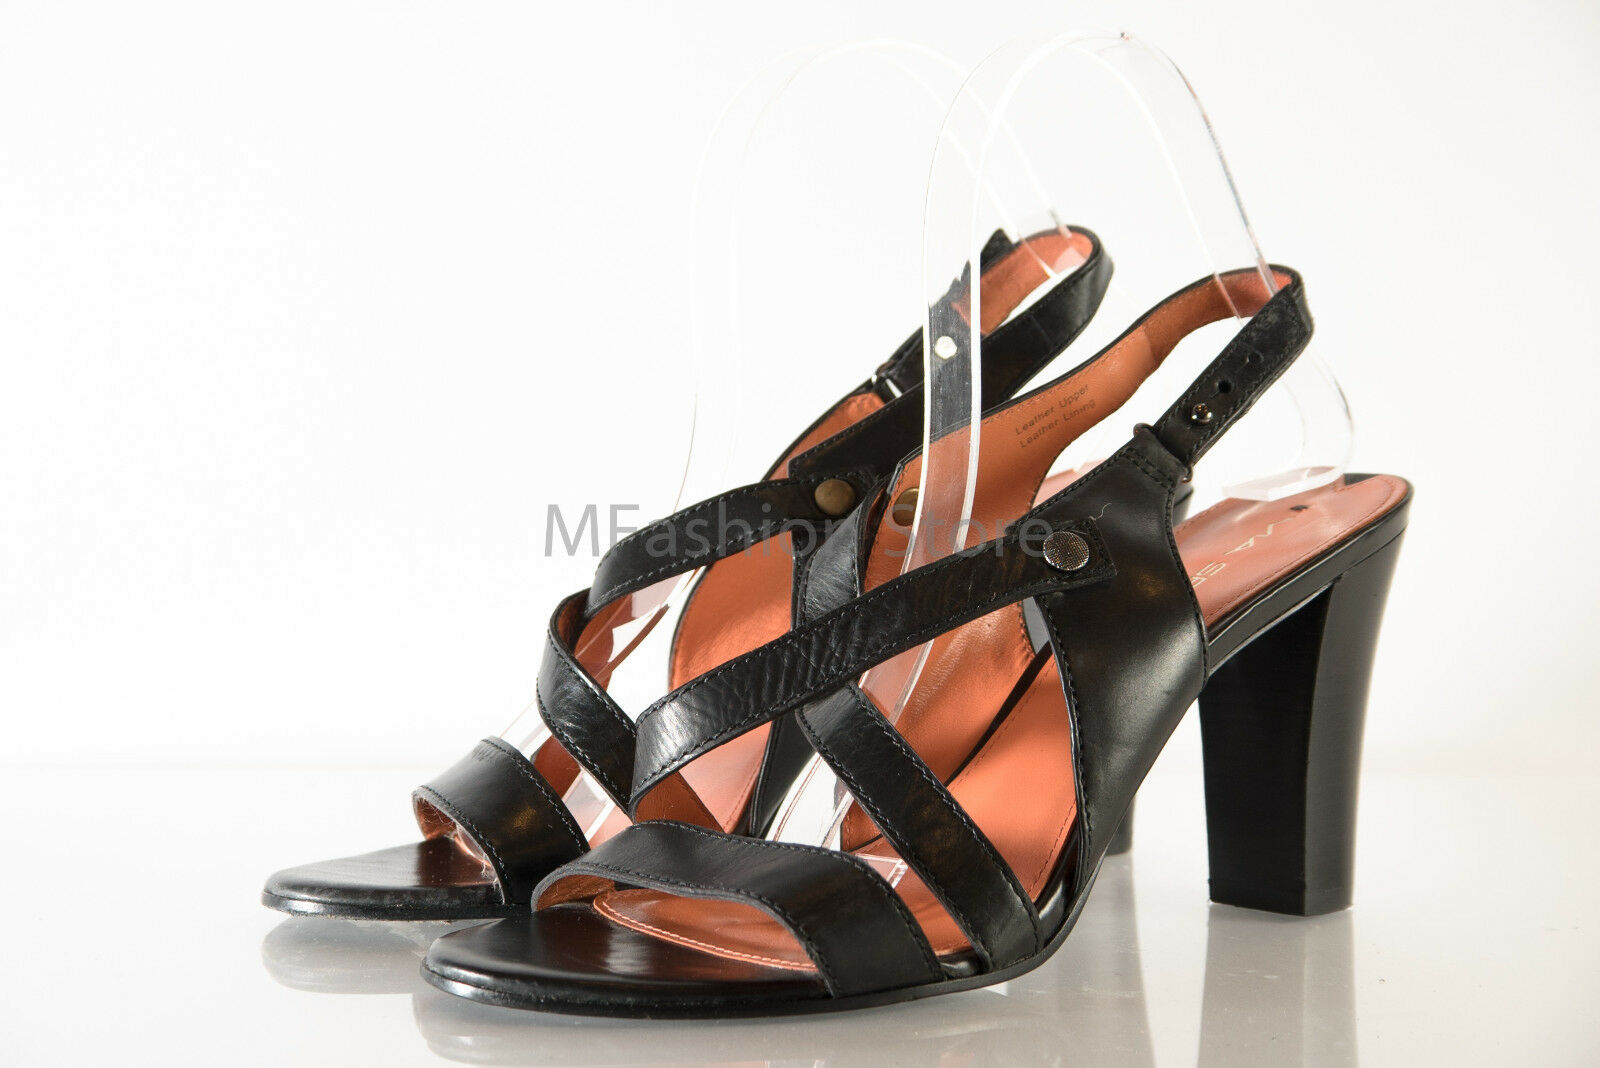 VIA SPIGA Heels Pumps shoes SIZE US 8.5M. EUR EUR EUR 40. PRE OWNED 52774a